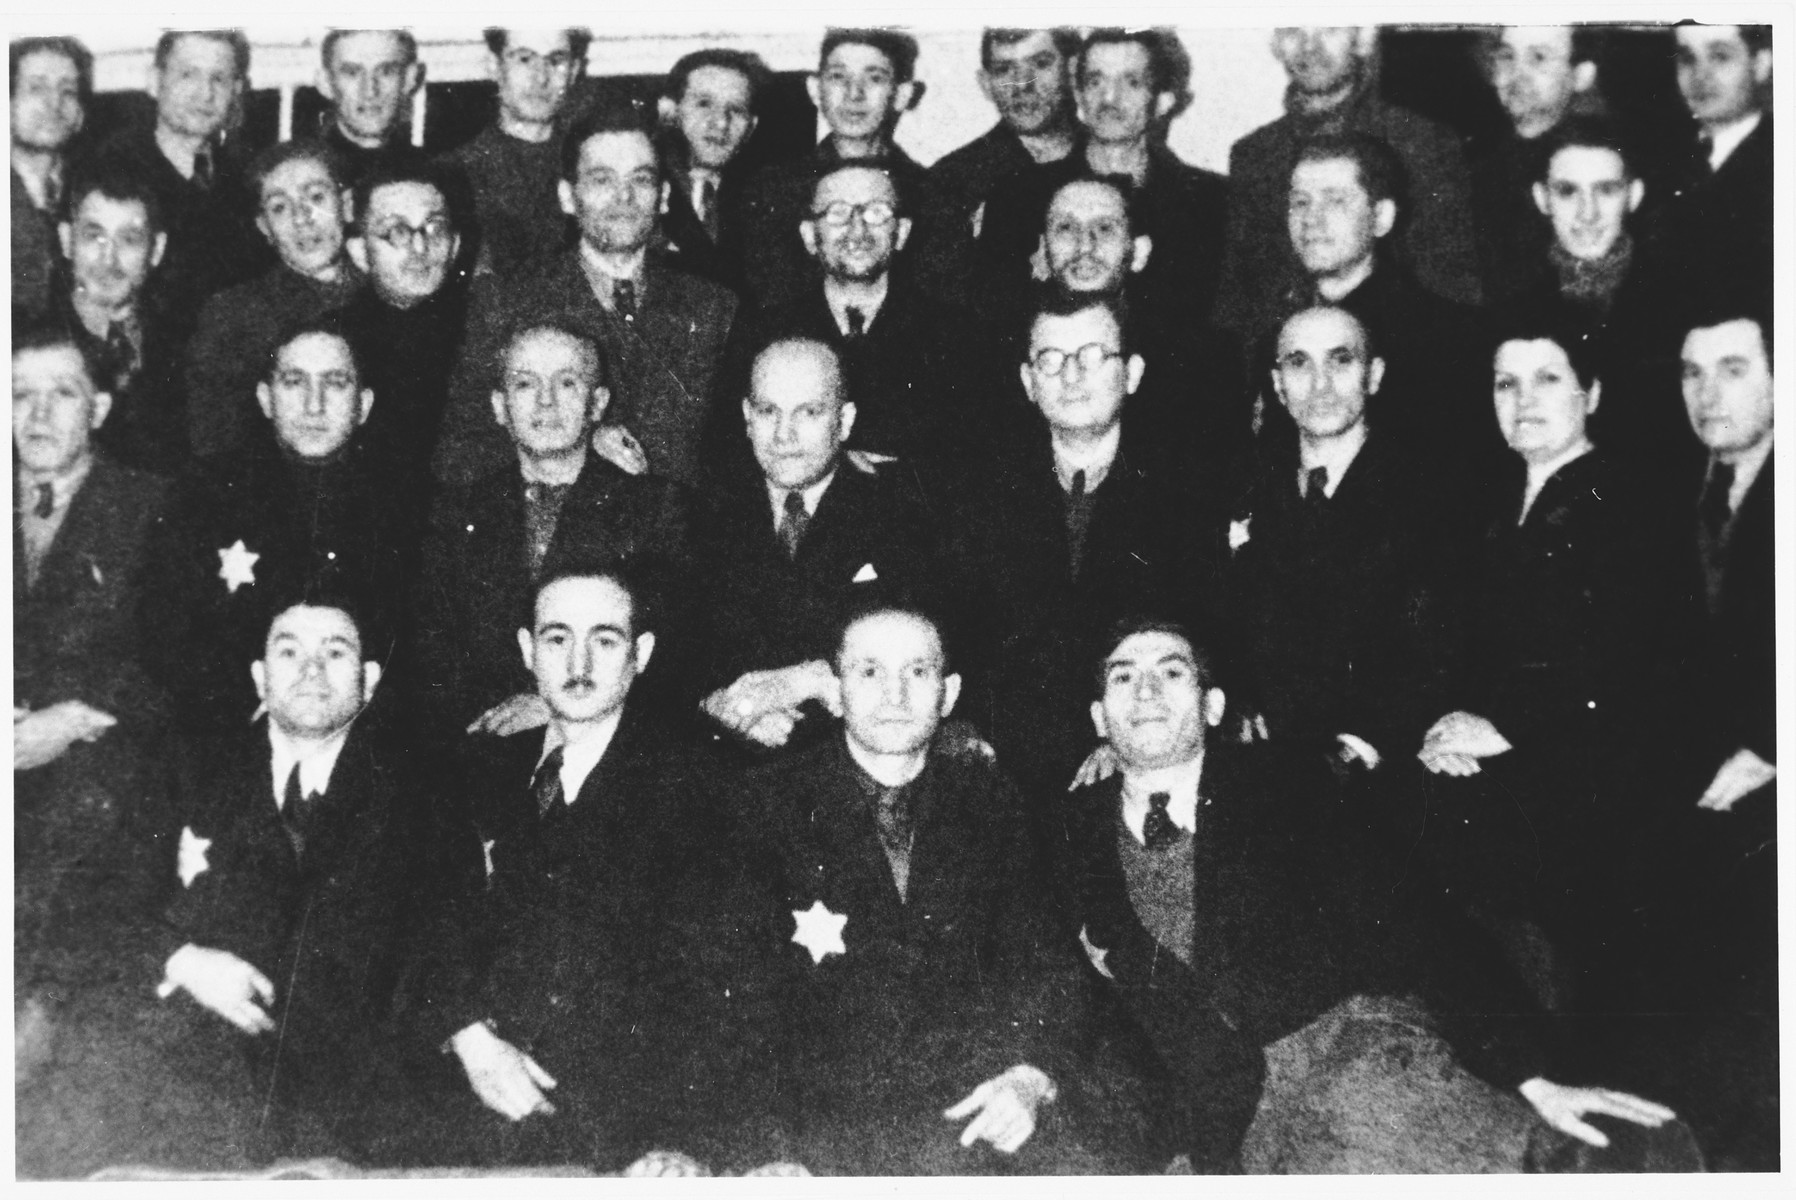 Group portrait of Jewish men in an unidentified ghetto wearing Jewish stars.